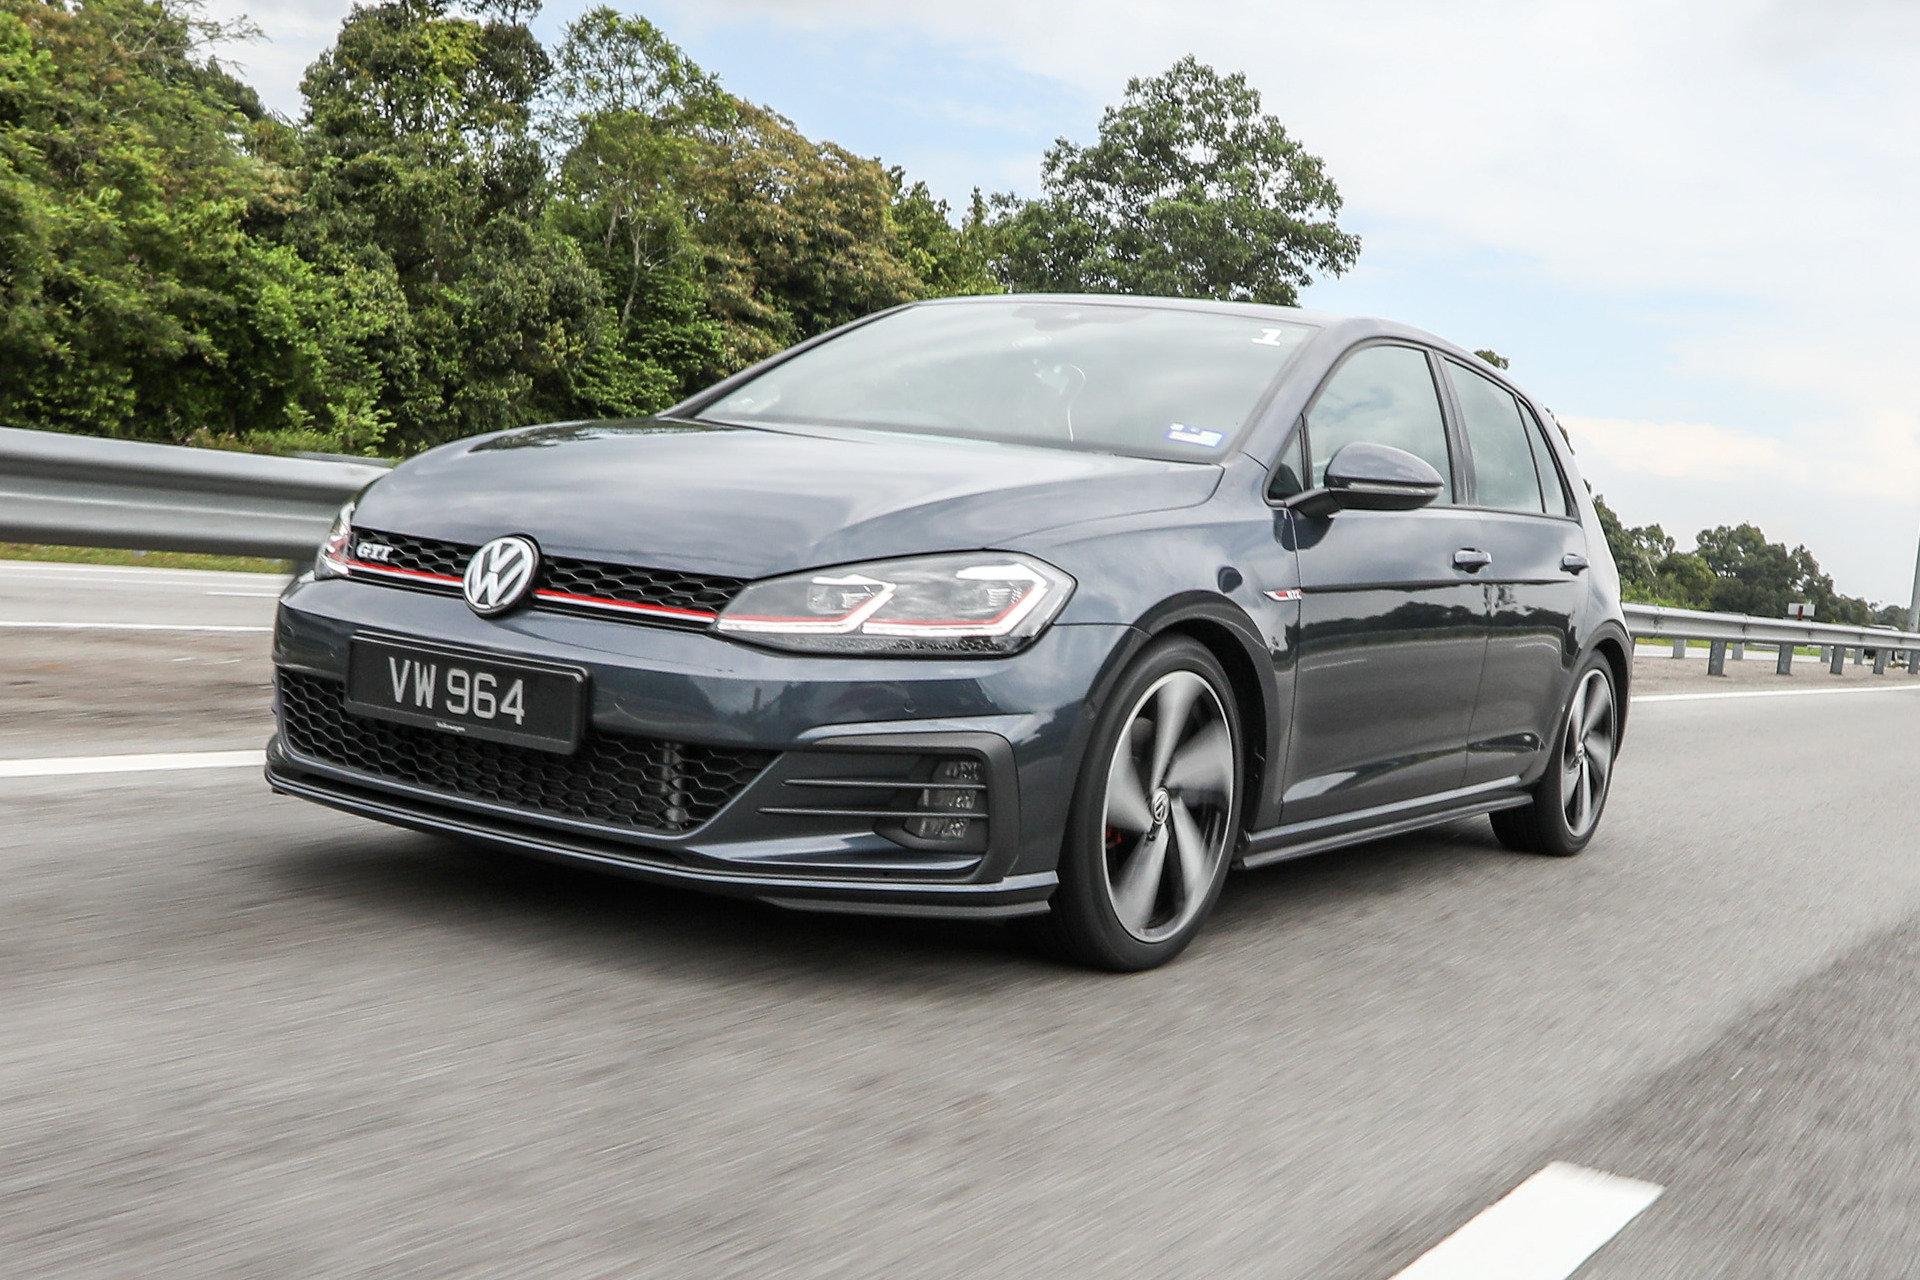 Volkswagen Golf Gti Mk7 5 Review Still The Hole In One Btw Rojak Daily